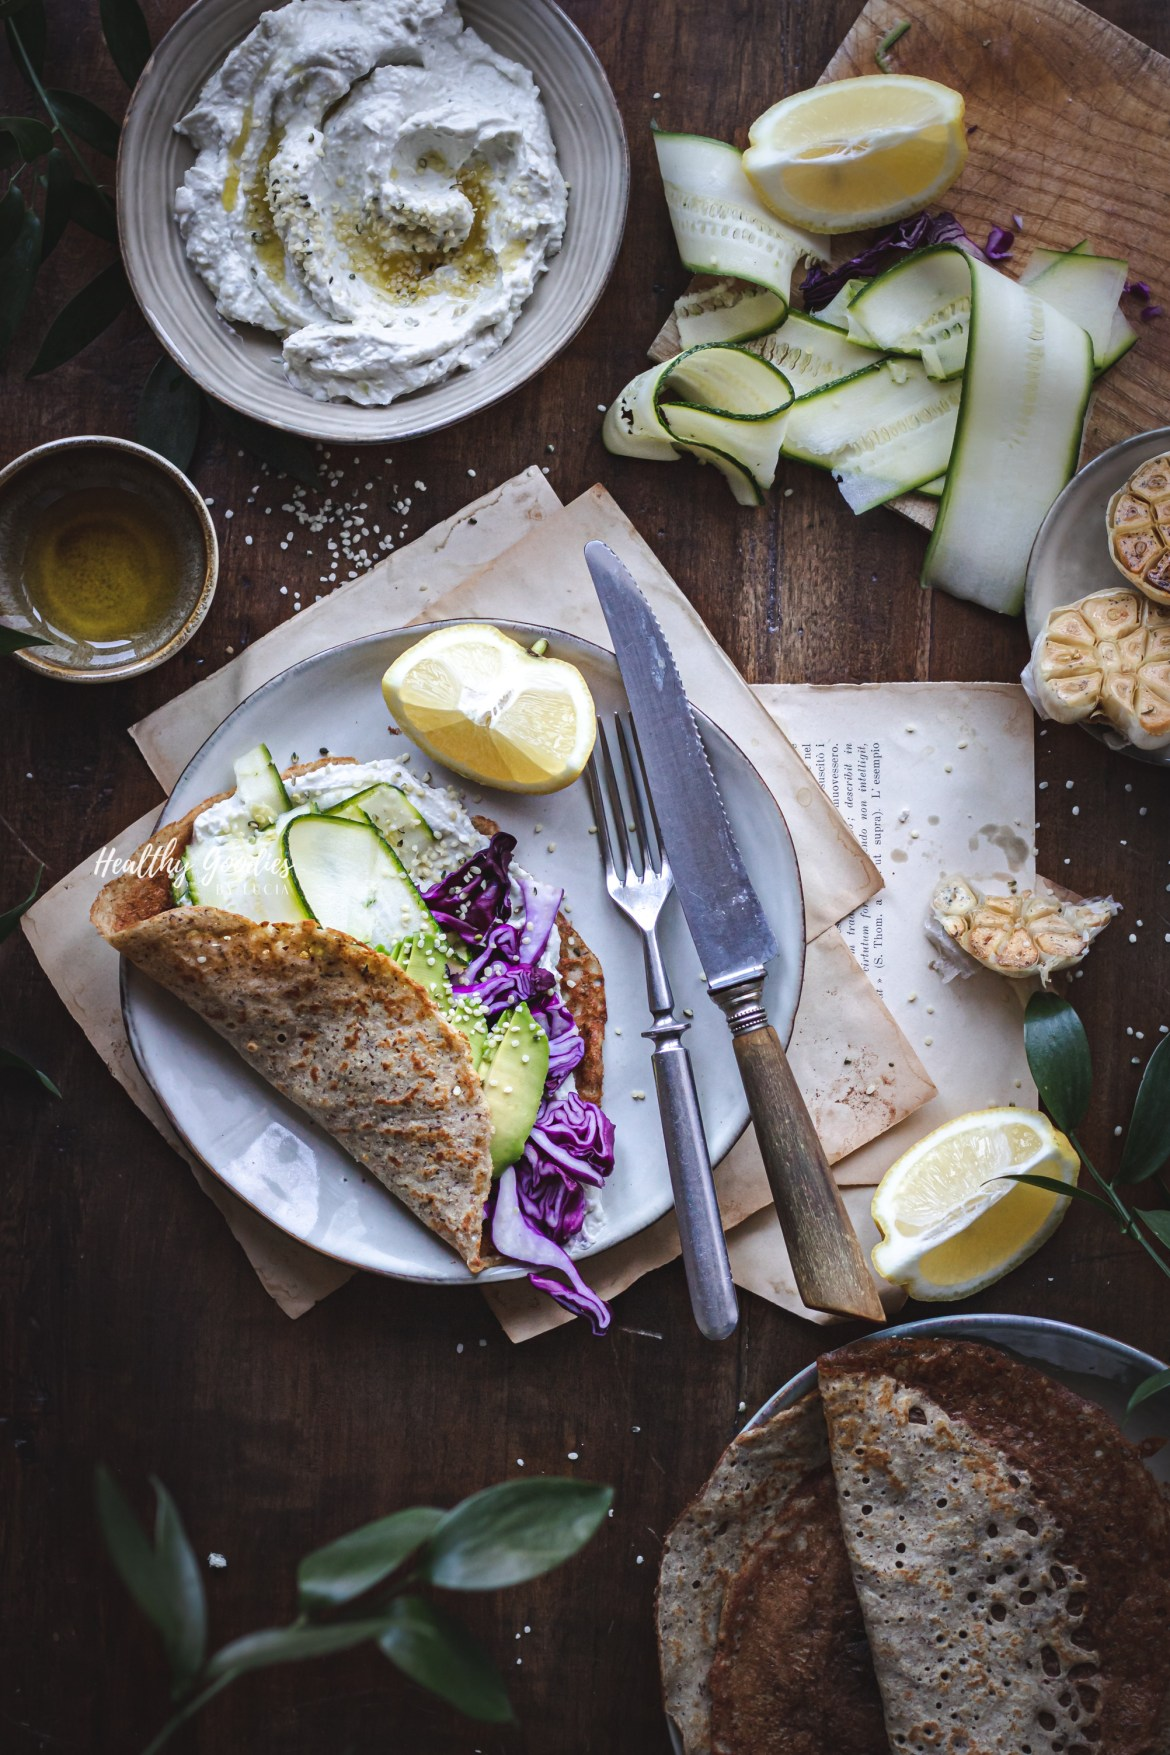 Veggie pancakes with garlic cream cheese | Healthy Goodies by Lucia Marecak